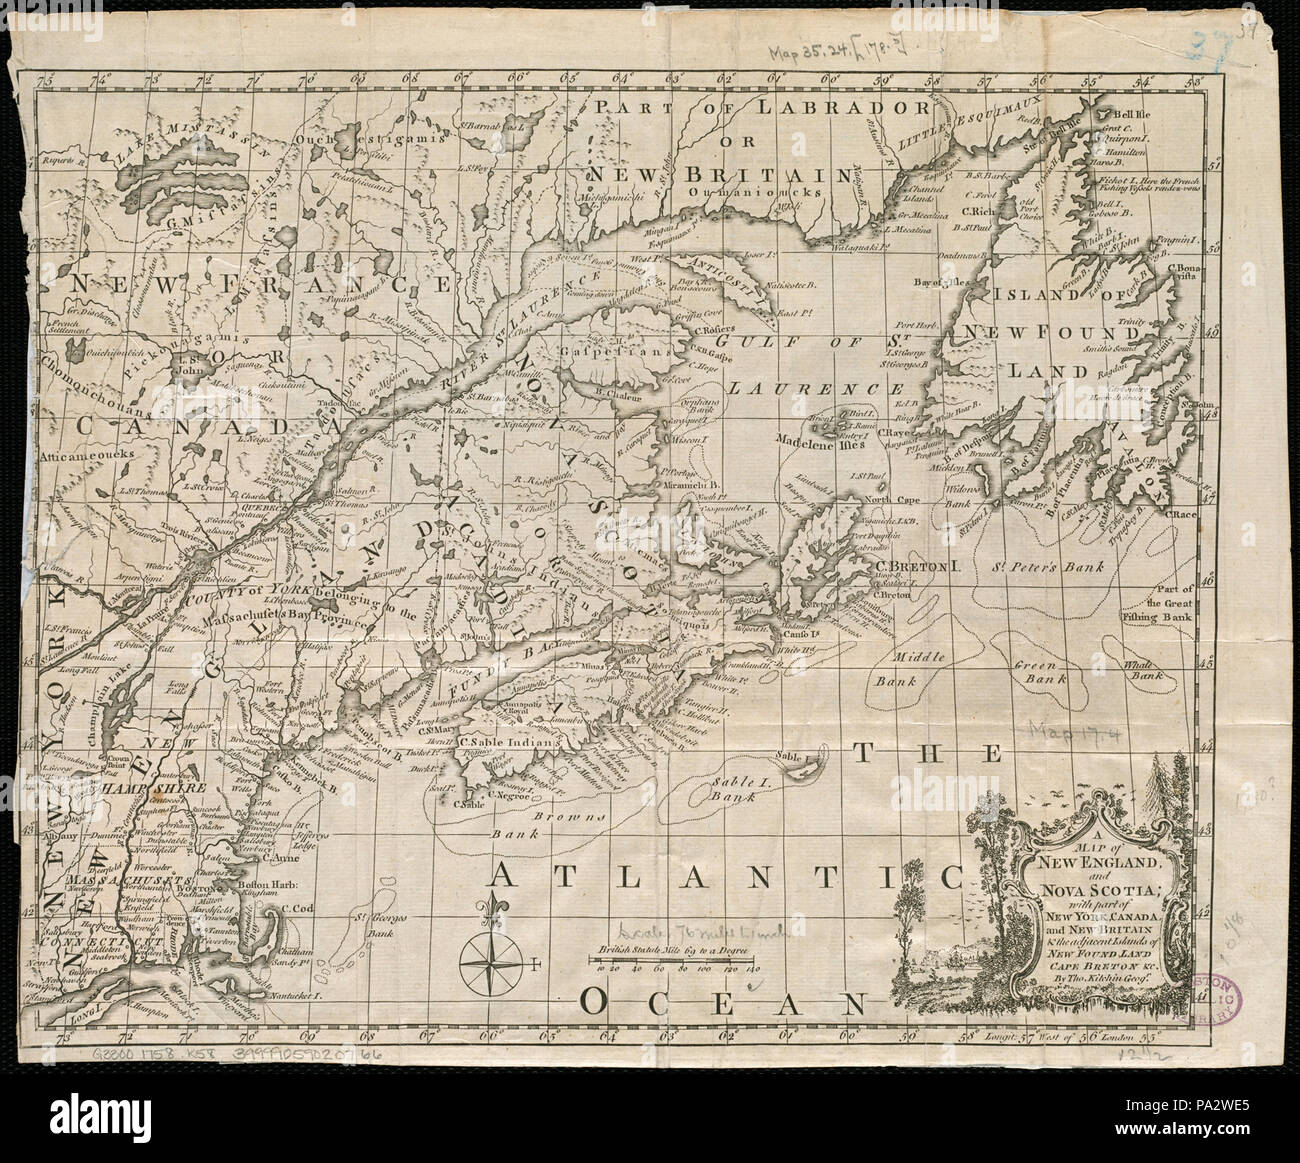 84 A map of New England, and Nova Scotia, with part of New York ...